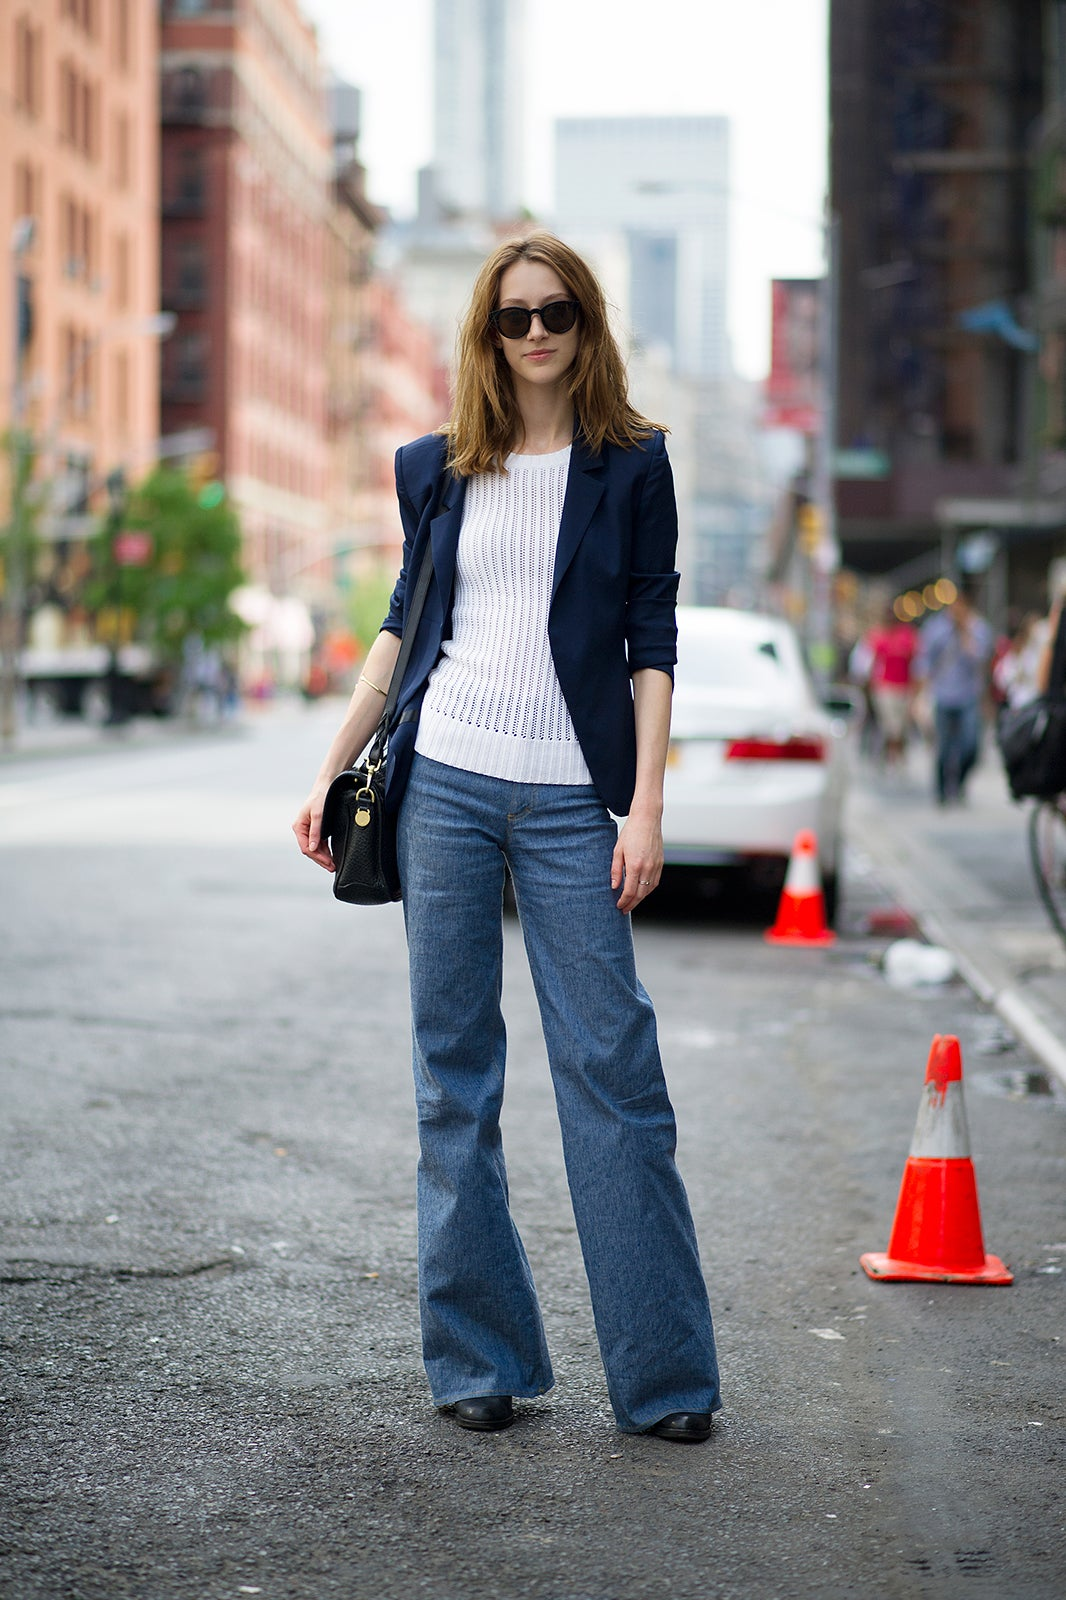 2e4946beaaa4 New York Street Style - Cool Summer Outfits